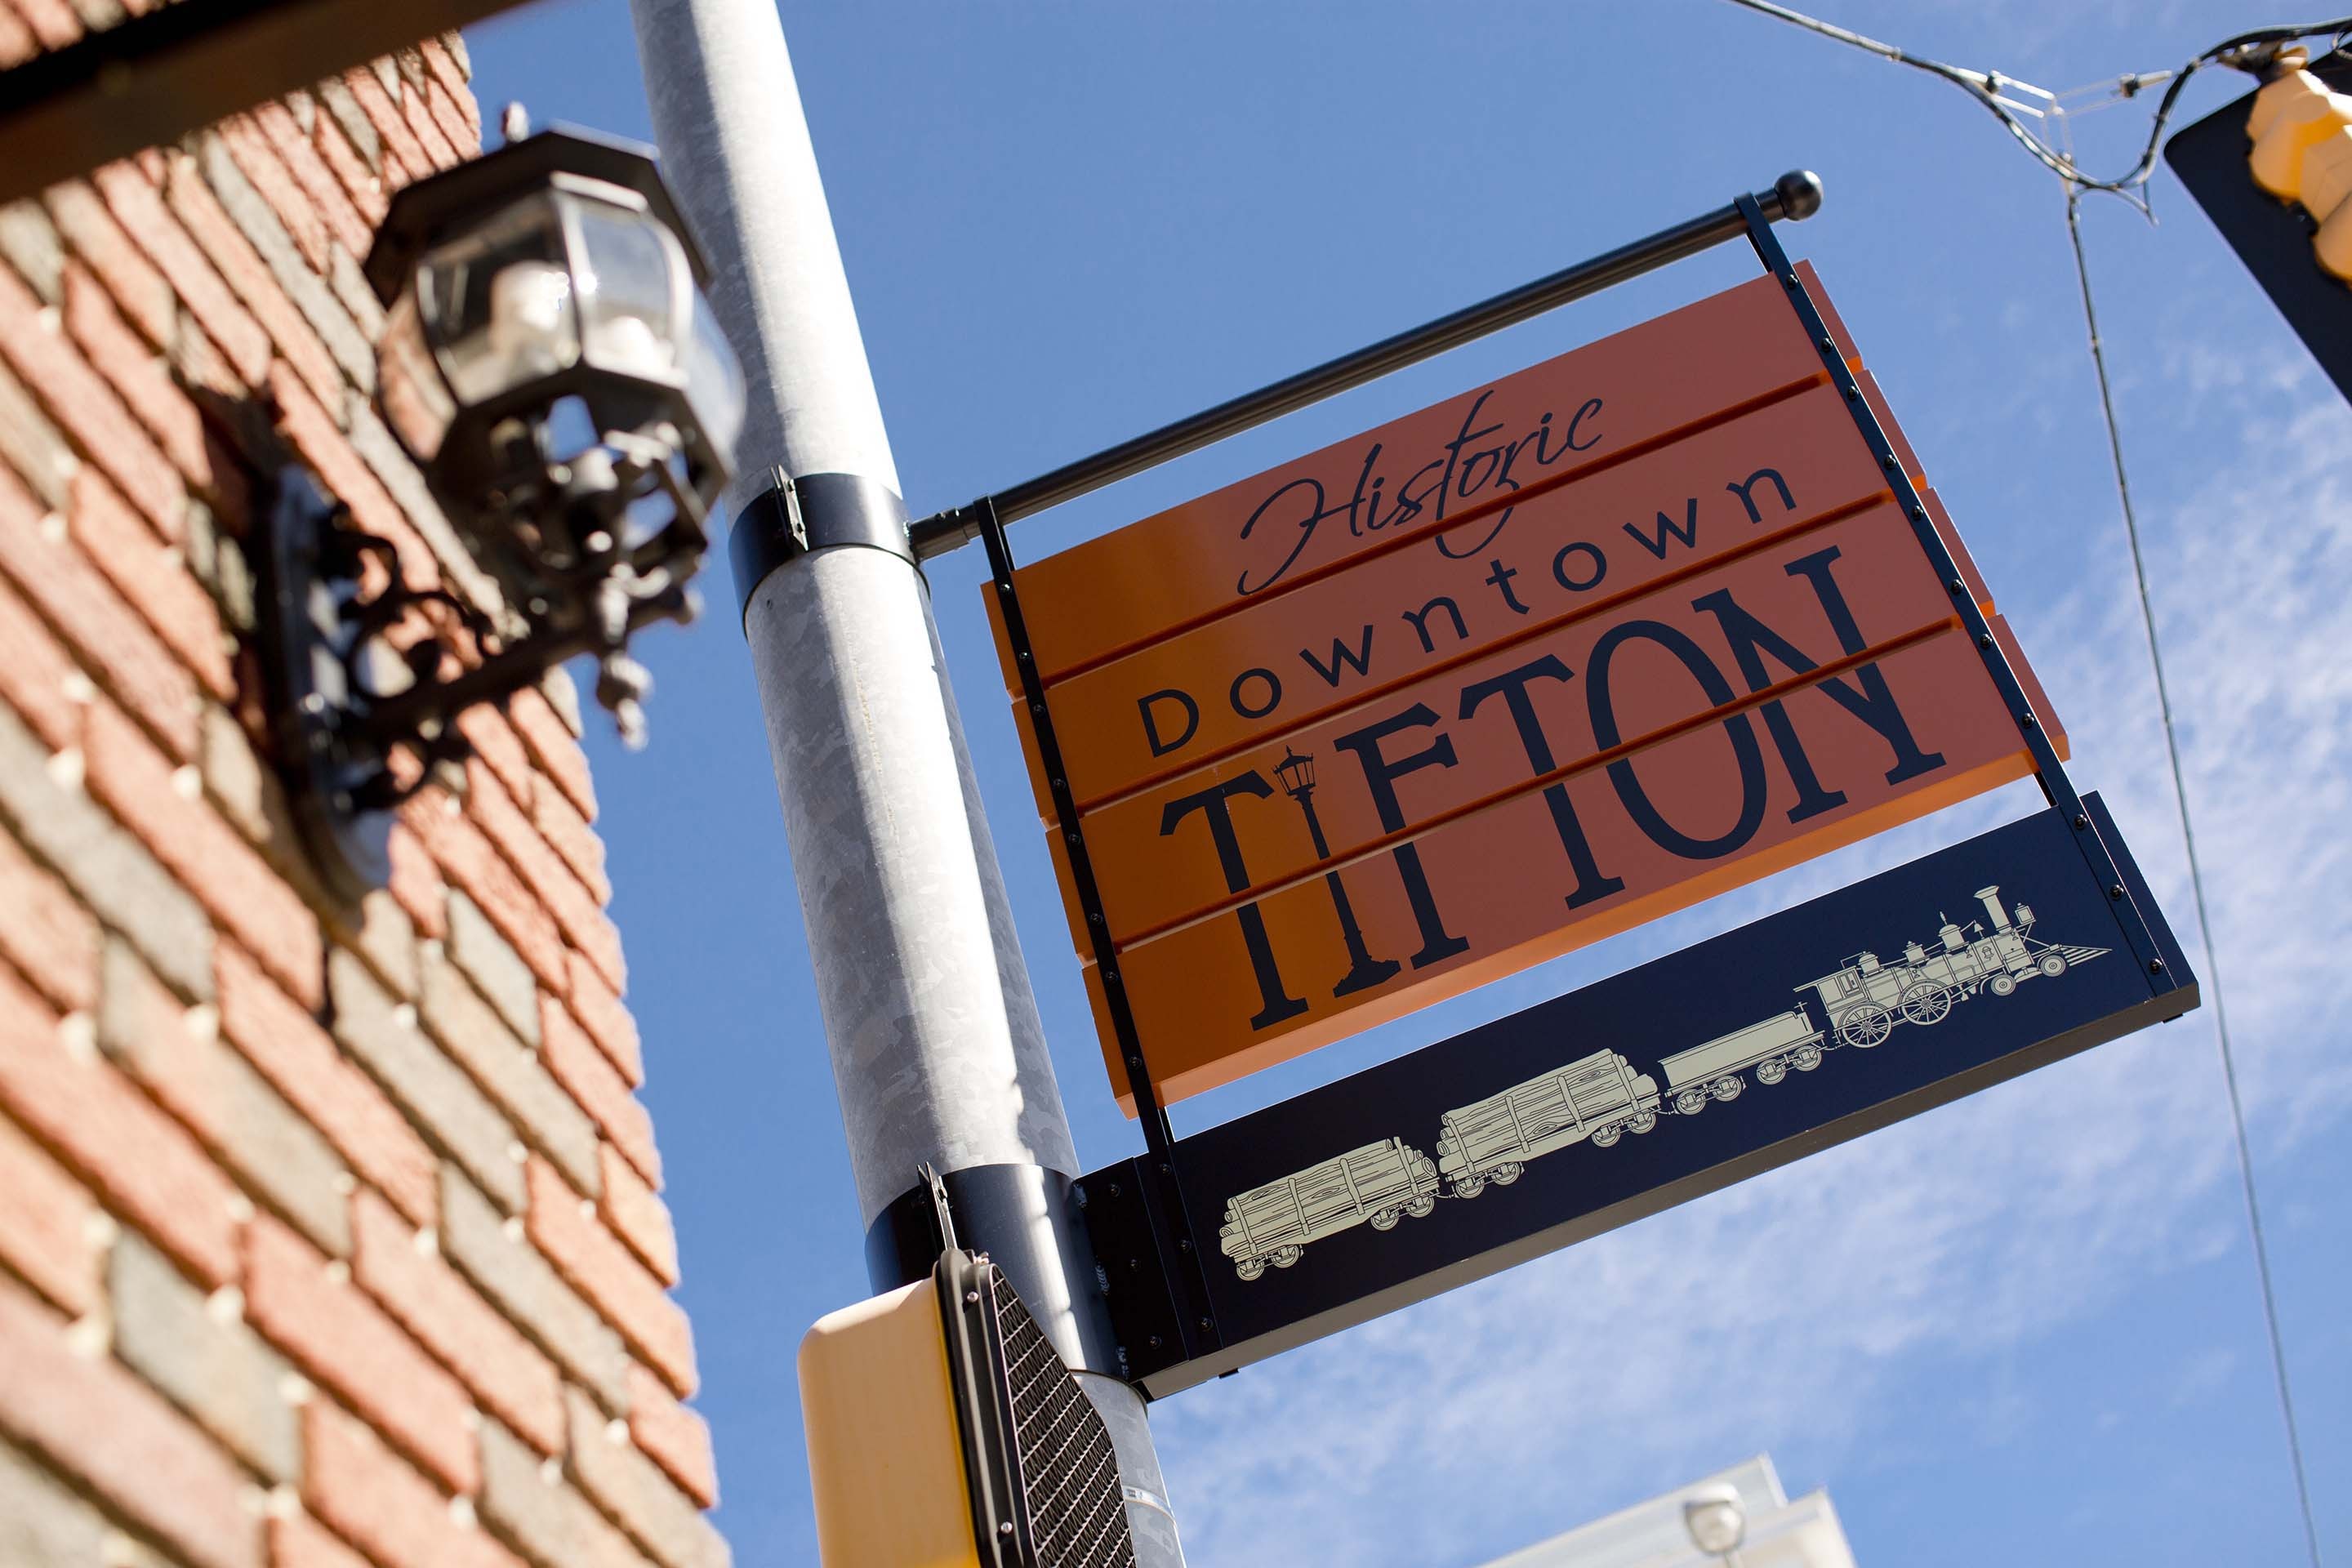 Historic downtown Tifton sign